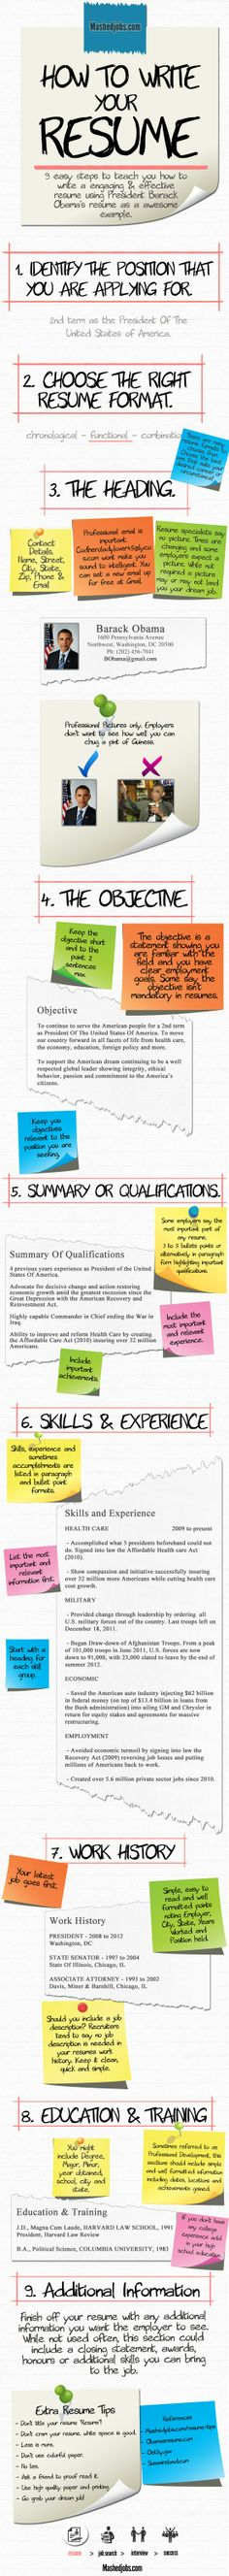 images about resume cover letter on pinterest resume how to write your resume